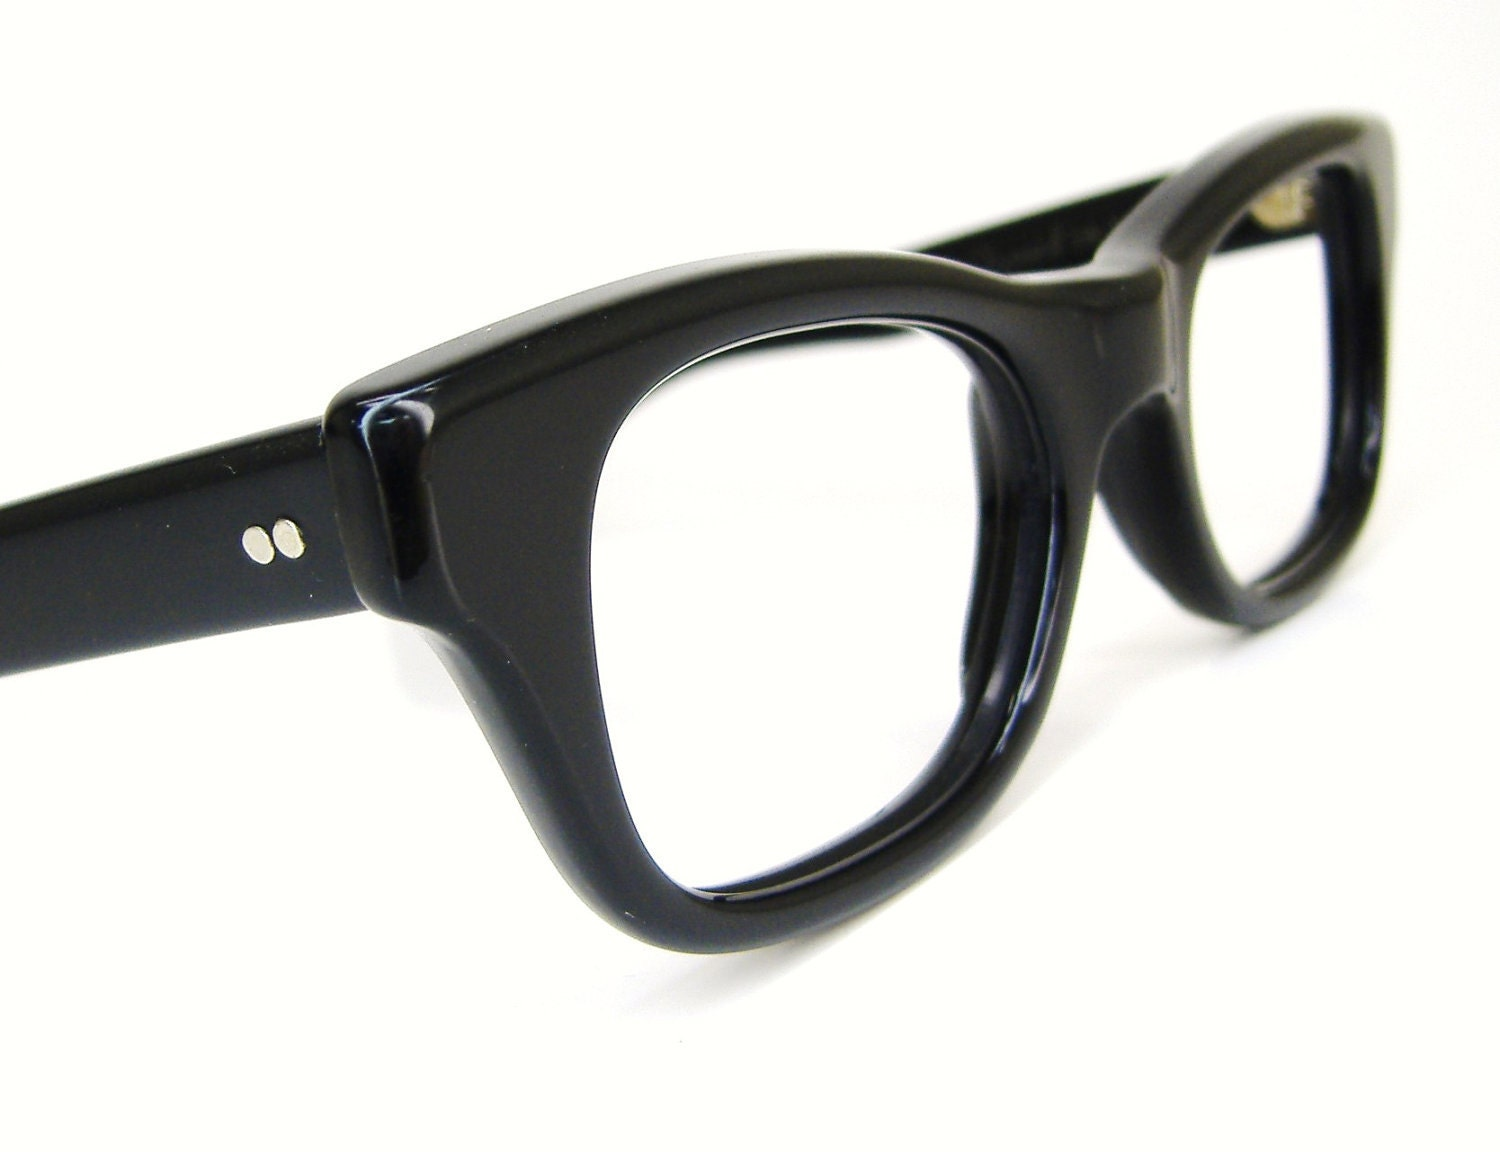 Black Frame Glasses Images : RESERVED Vintage 50s Thick Black Nerd Glasses Eyeglasses Frame